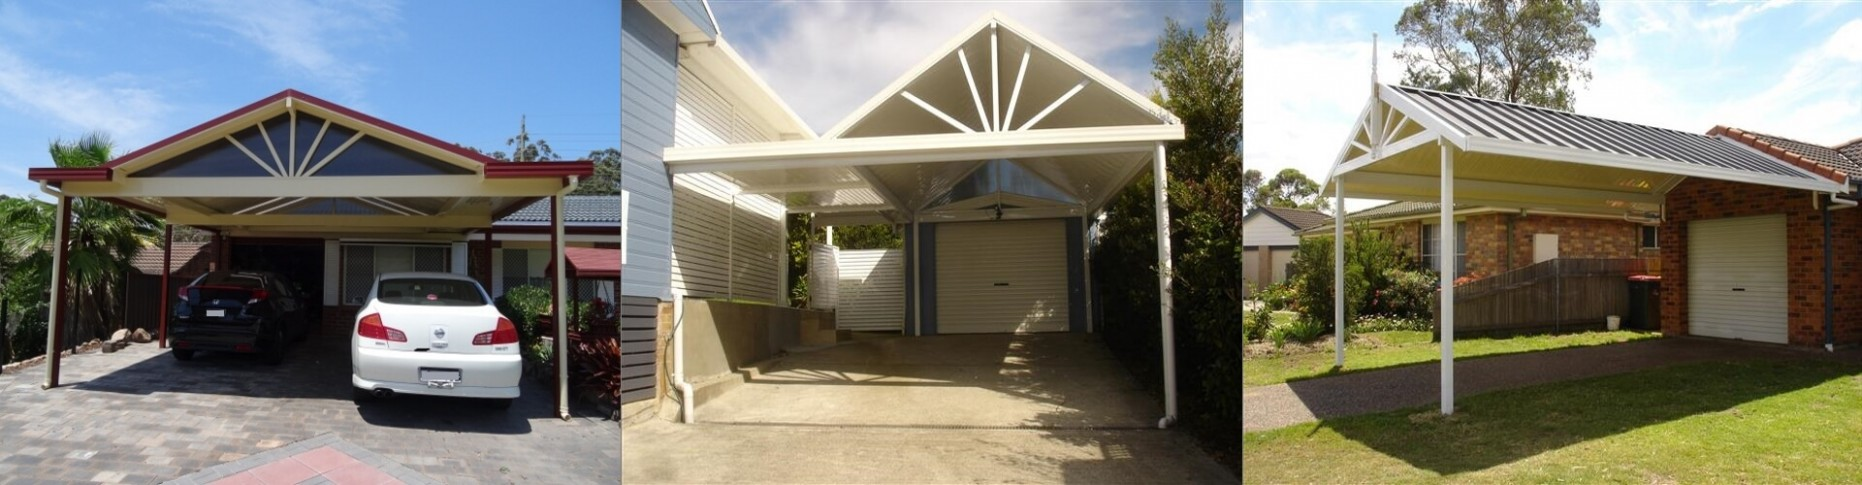 Why Carports And Shelters Had Been So Popular Till Now? | carports and shelters